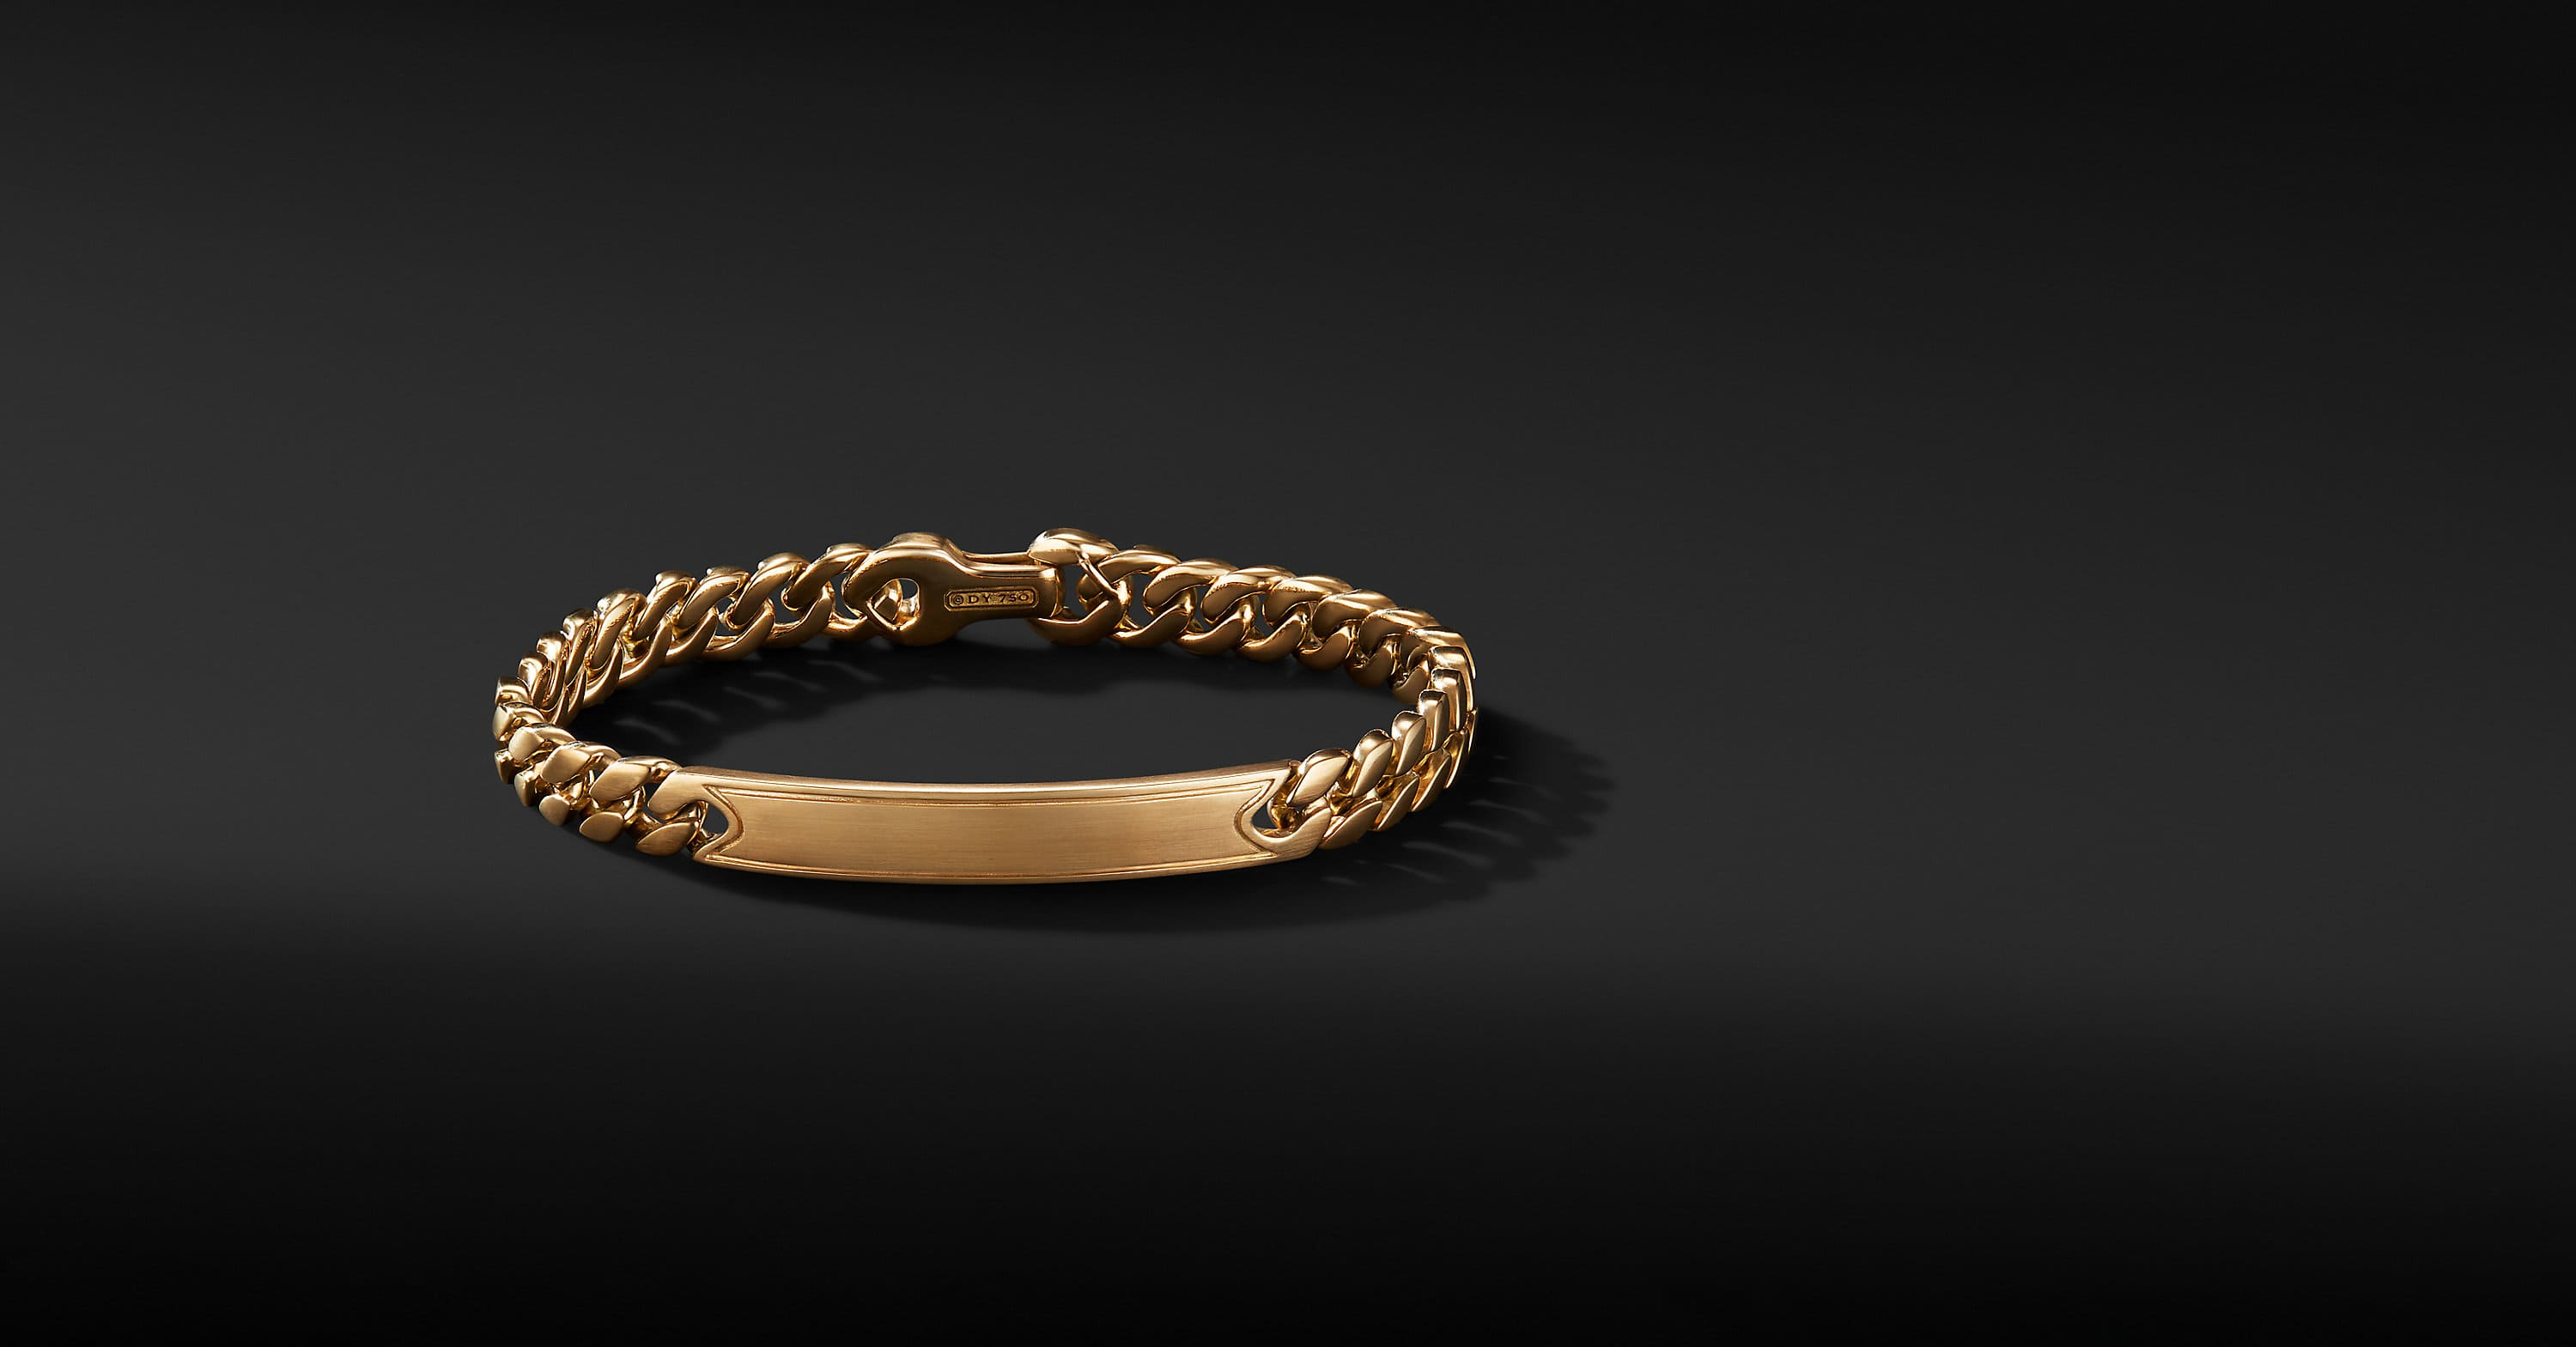 Micro Curb Chain Id Bracelet In 18k